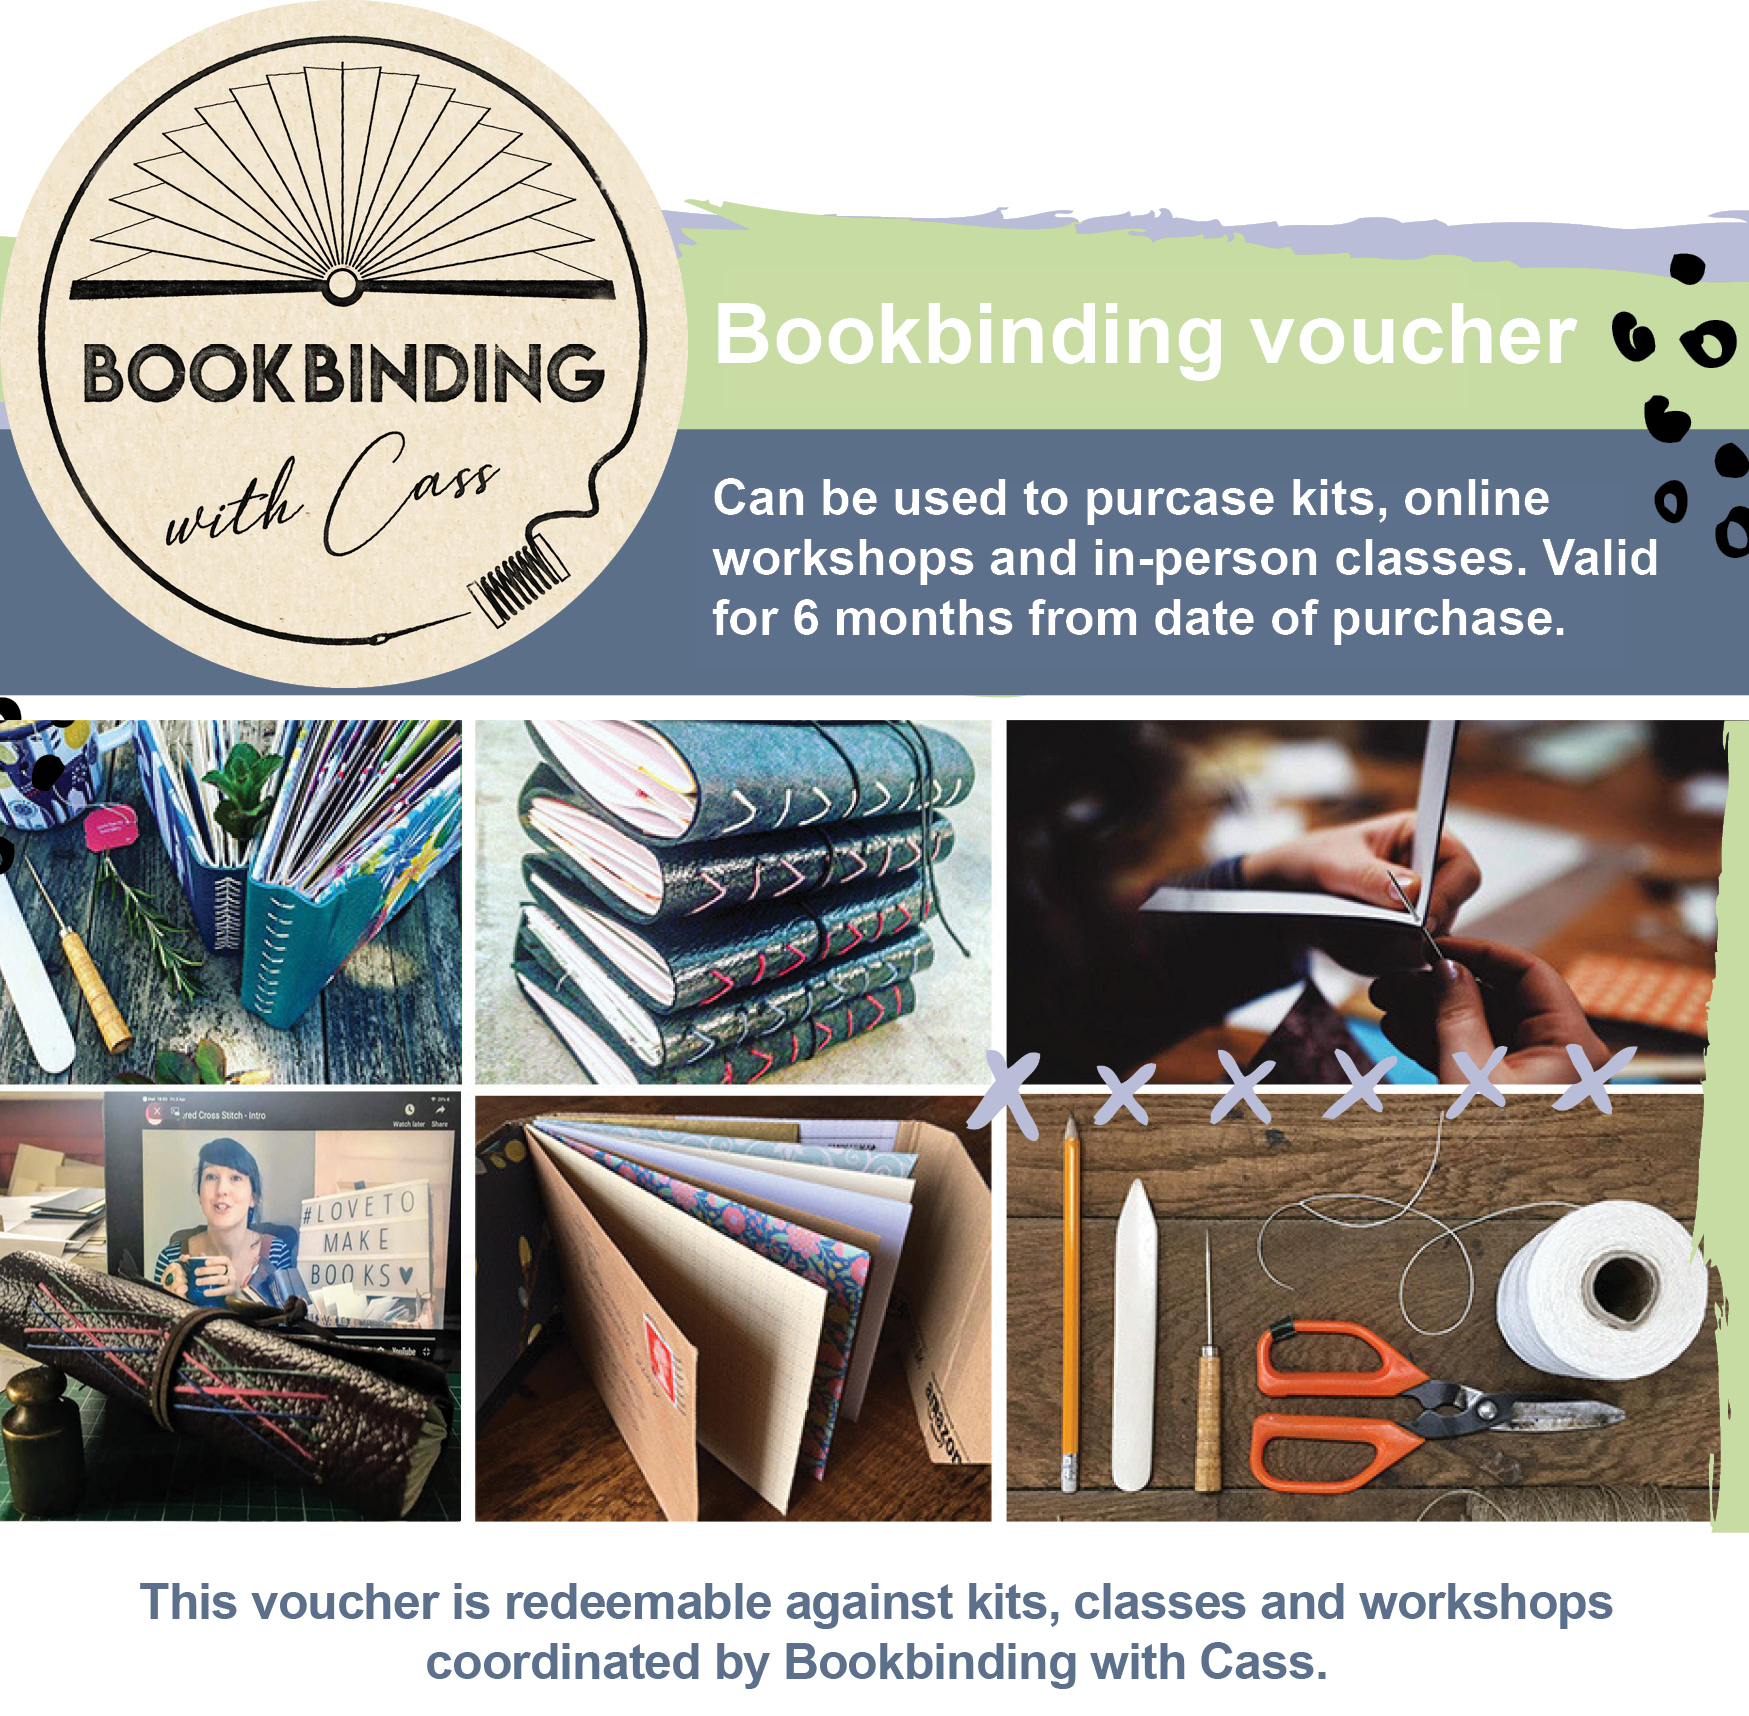 bookbinding-with-cass-voucher2